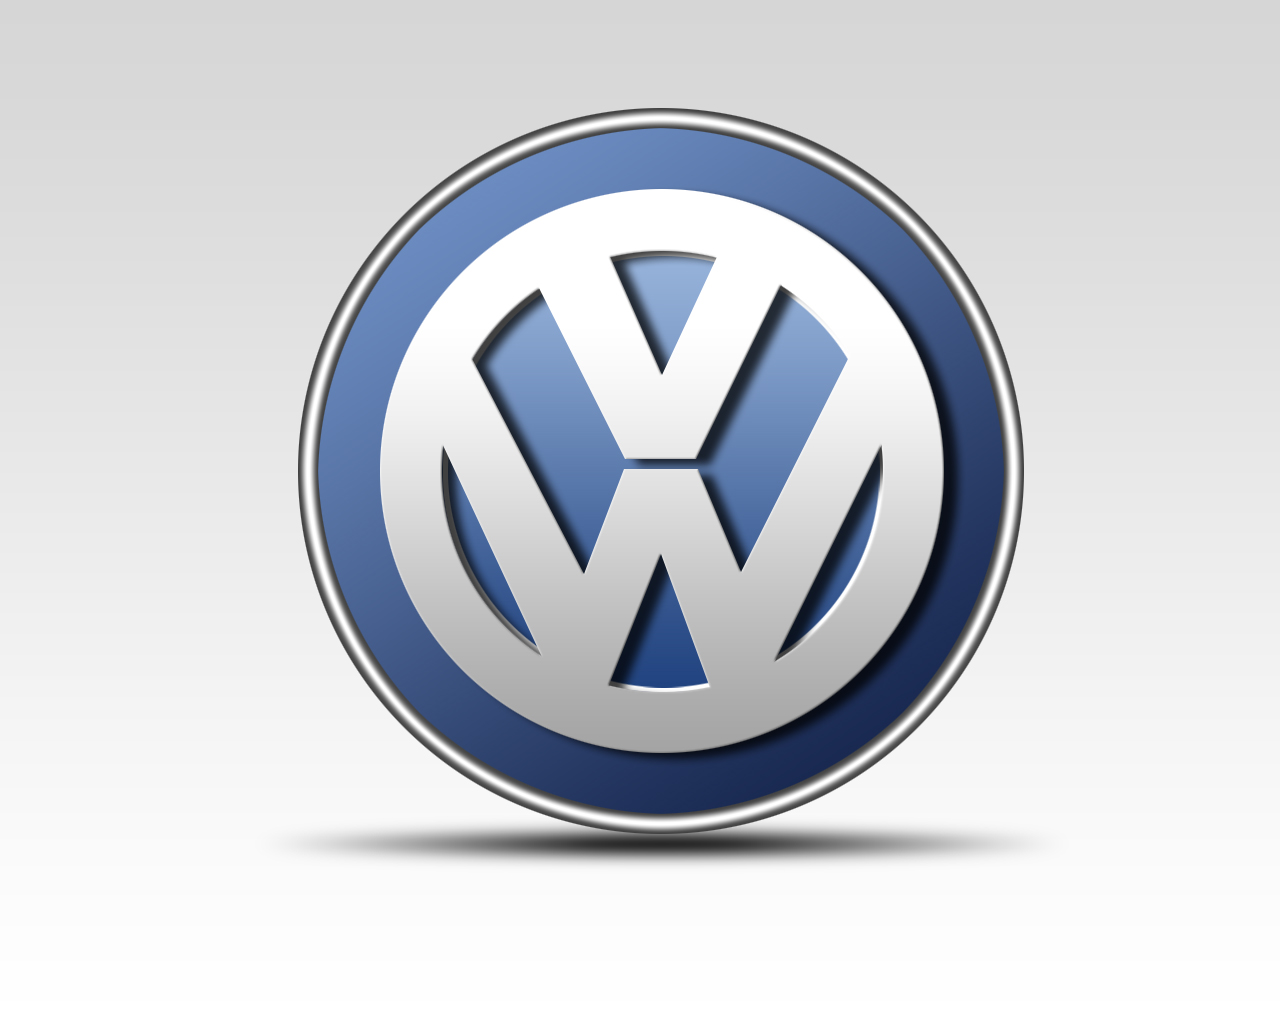 Volkswagen Logo Volkswagen Car Symbol Meaning And History Car